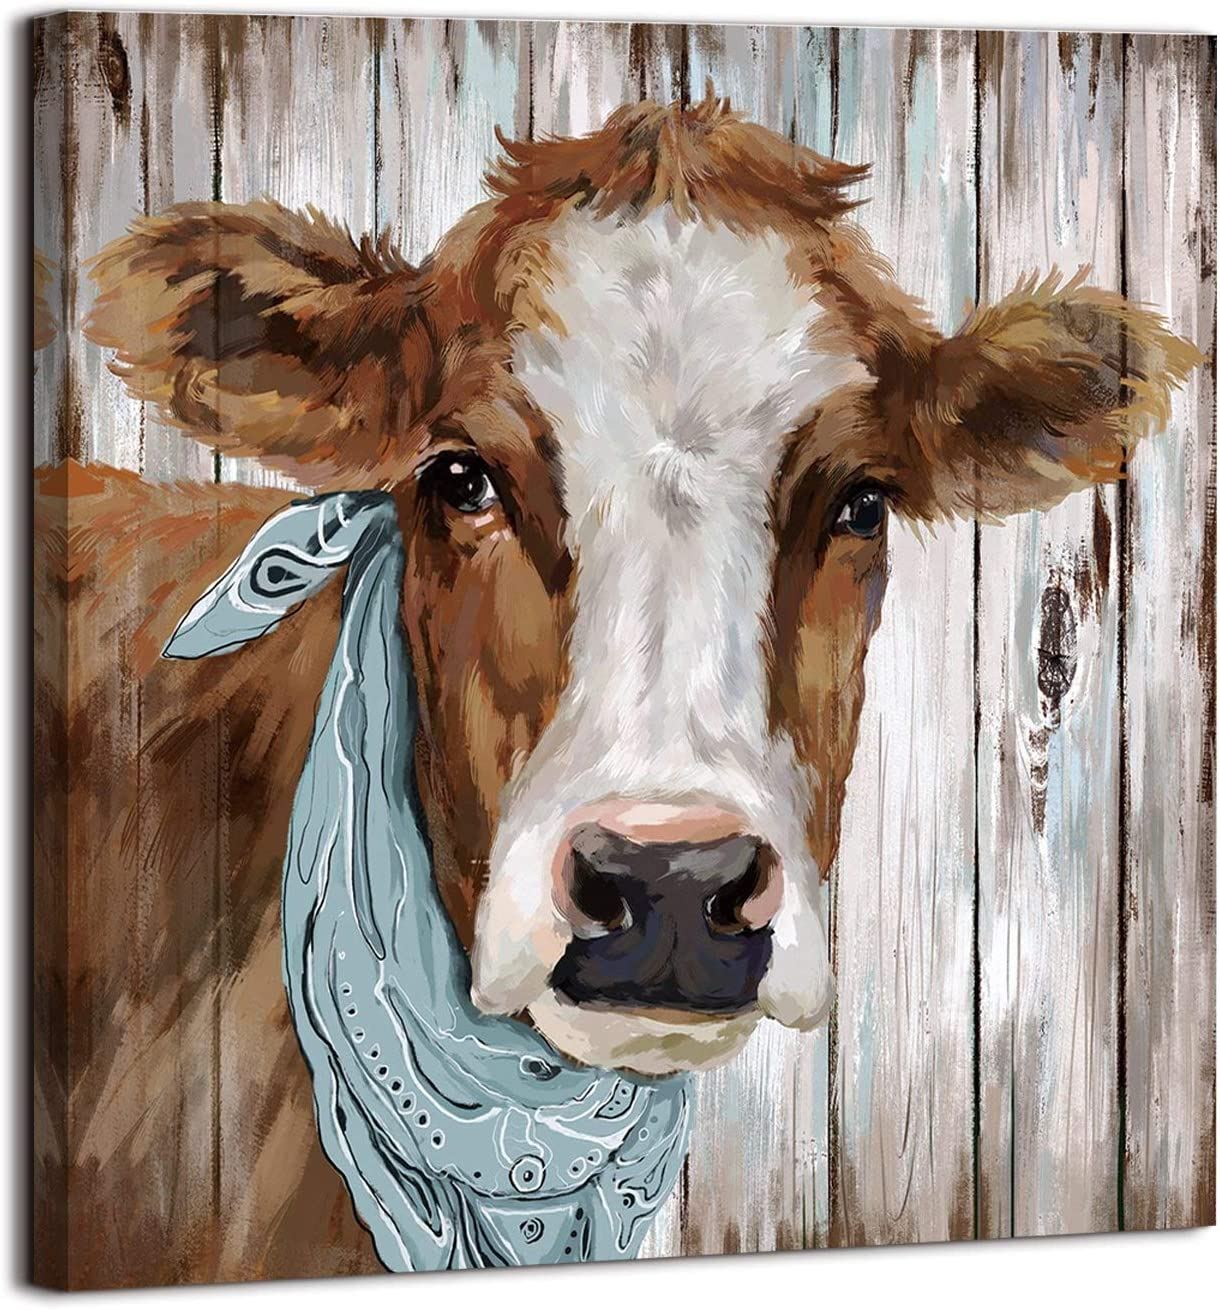 Cow canvas decor, farmhouse wall art pictures for Bathroom Bedroom Living Room Kitchen Wall Decor (COW, 14